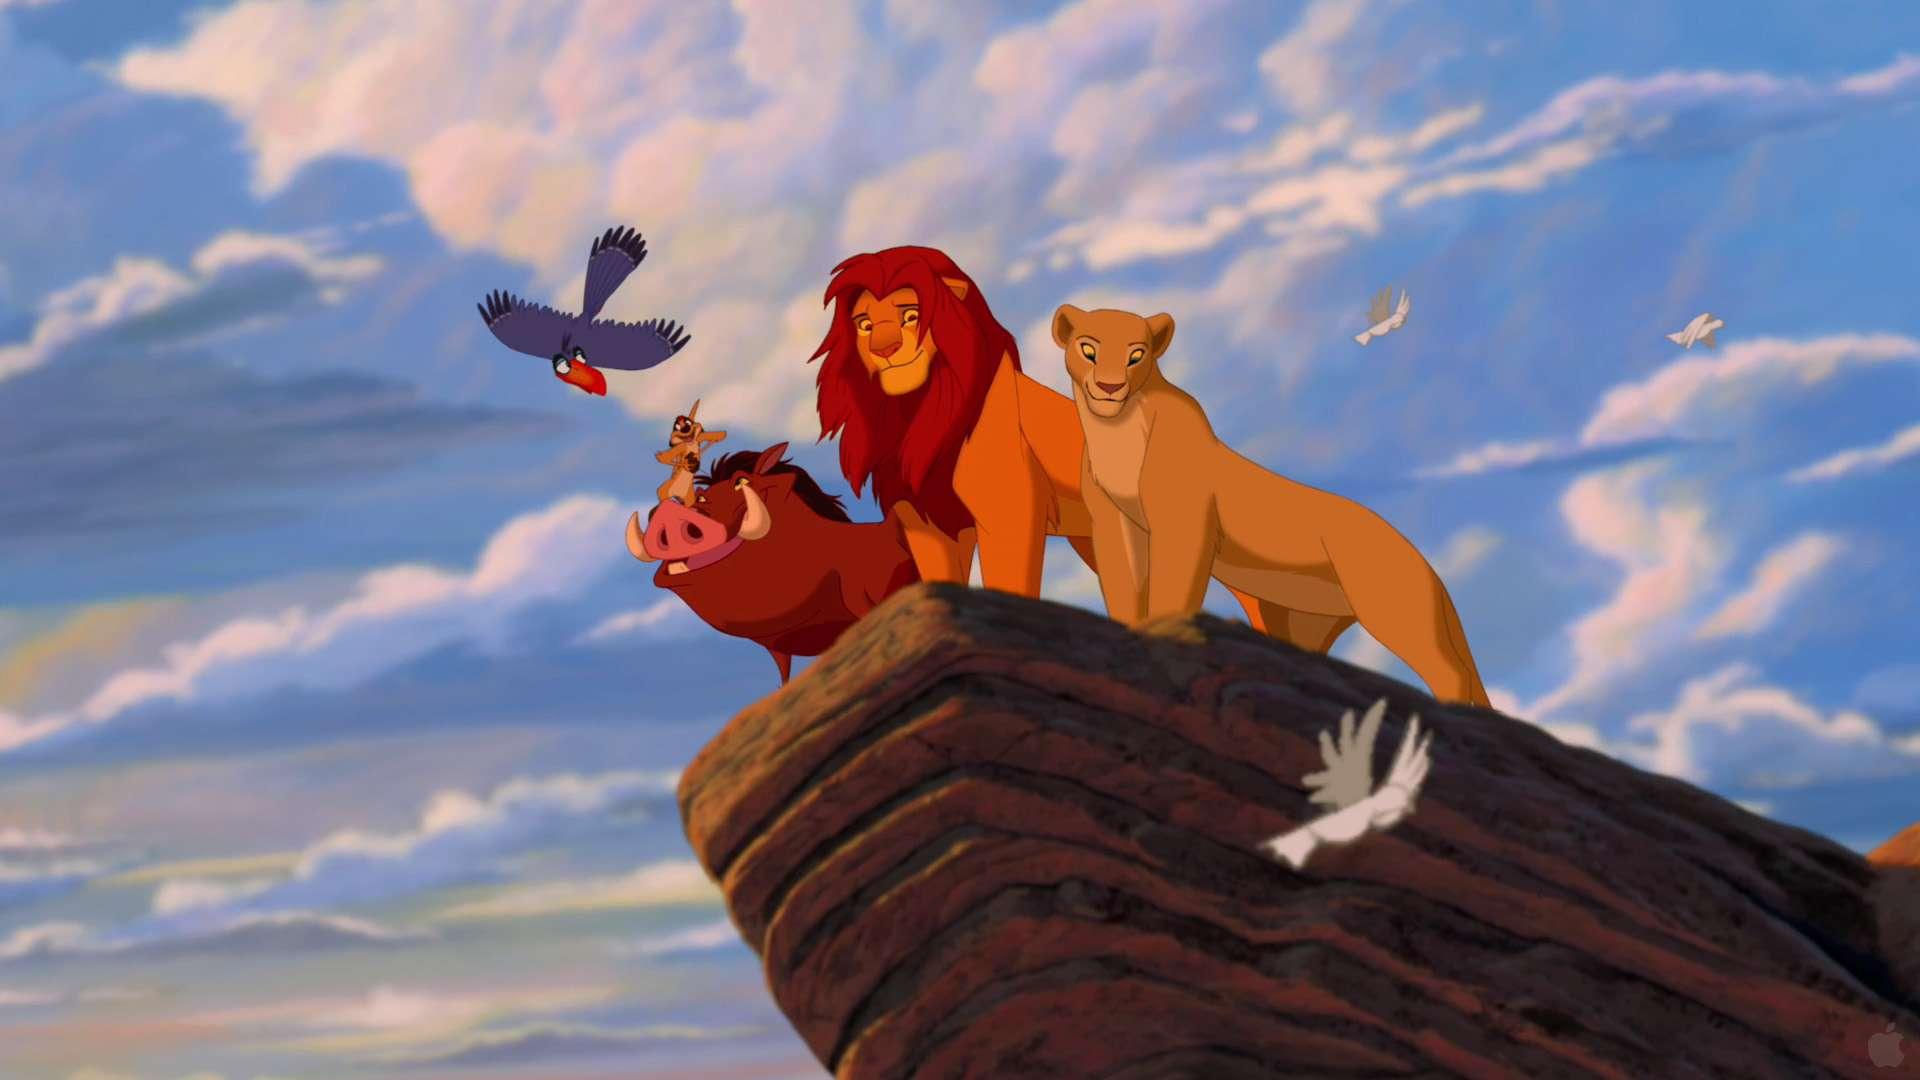 Cute Wallpapers With Quotes For Whatsapp Download Simba Lion King Wallpapers Hd Free Pixelstalk Net